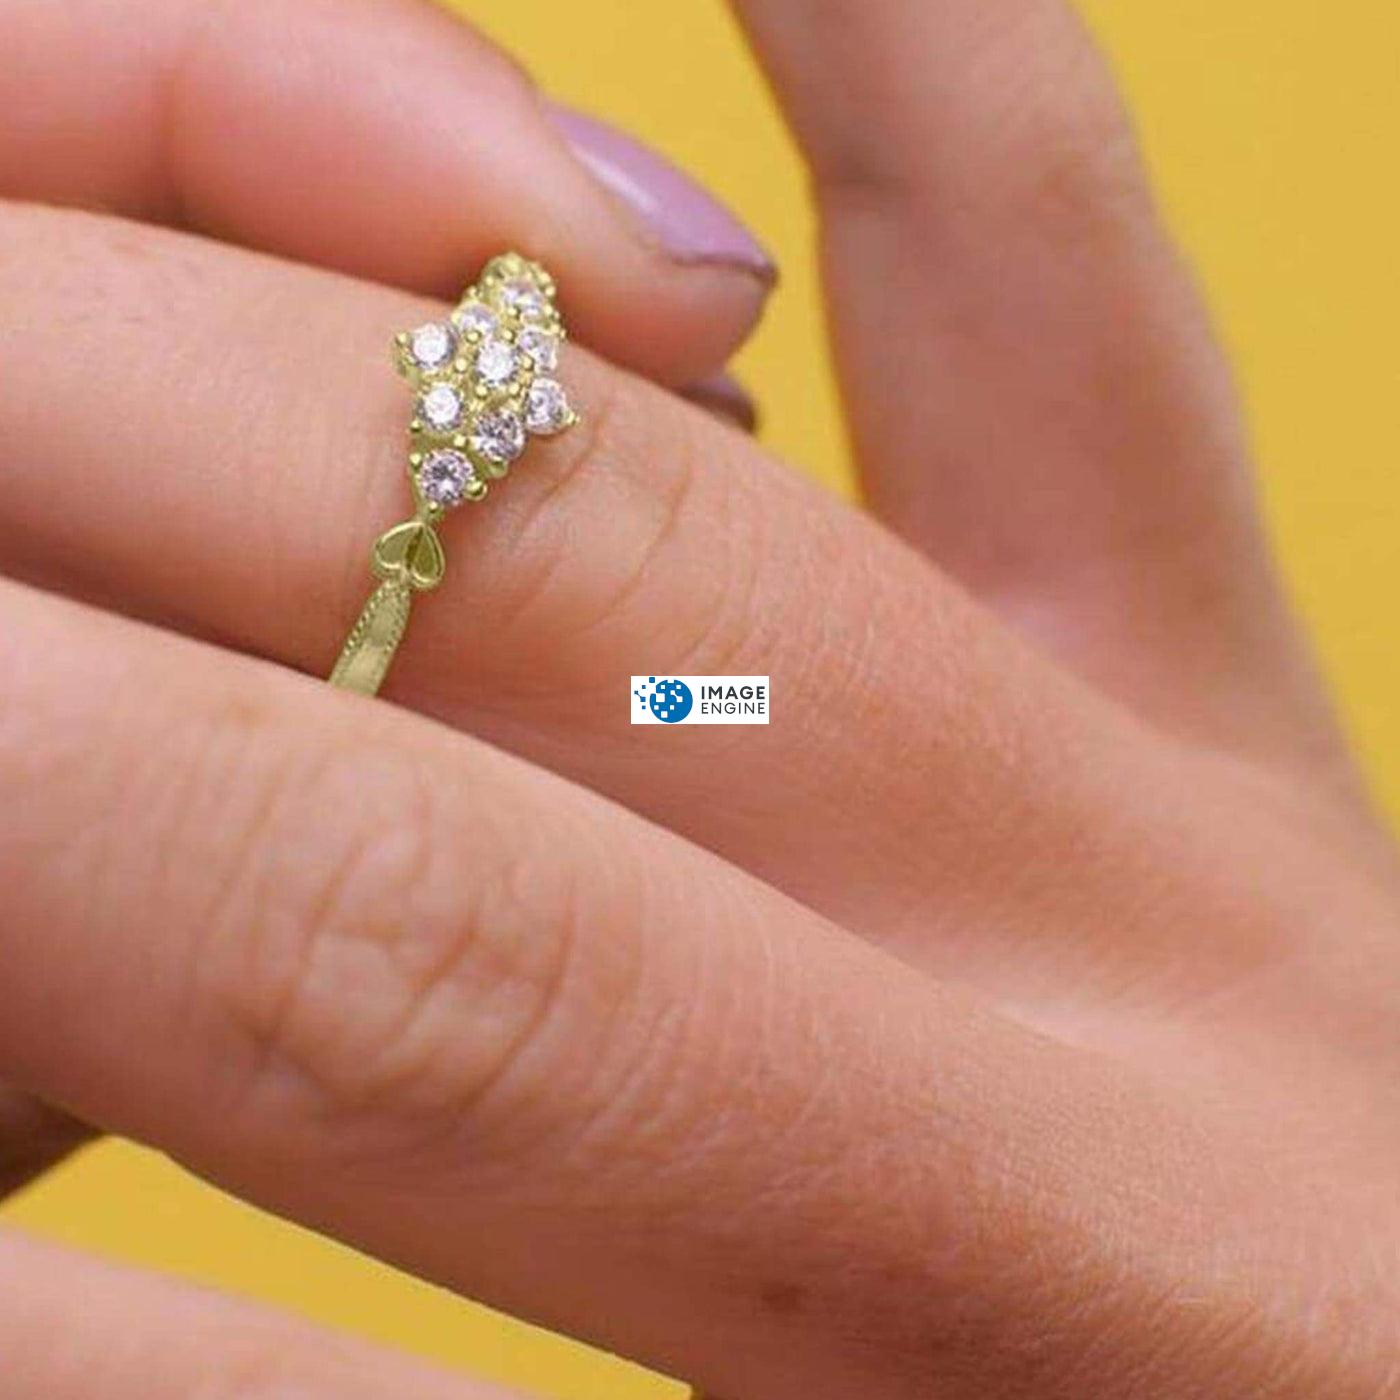 Sarah Snowflake Dainty Ring - Wearing on Ring Finger on Higher Angle View - 18K Yellow Gold Vermeil